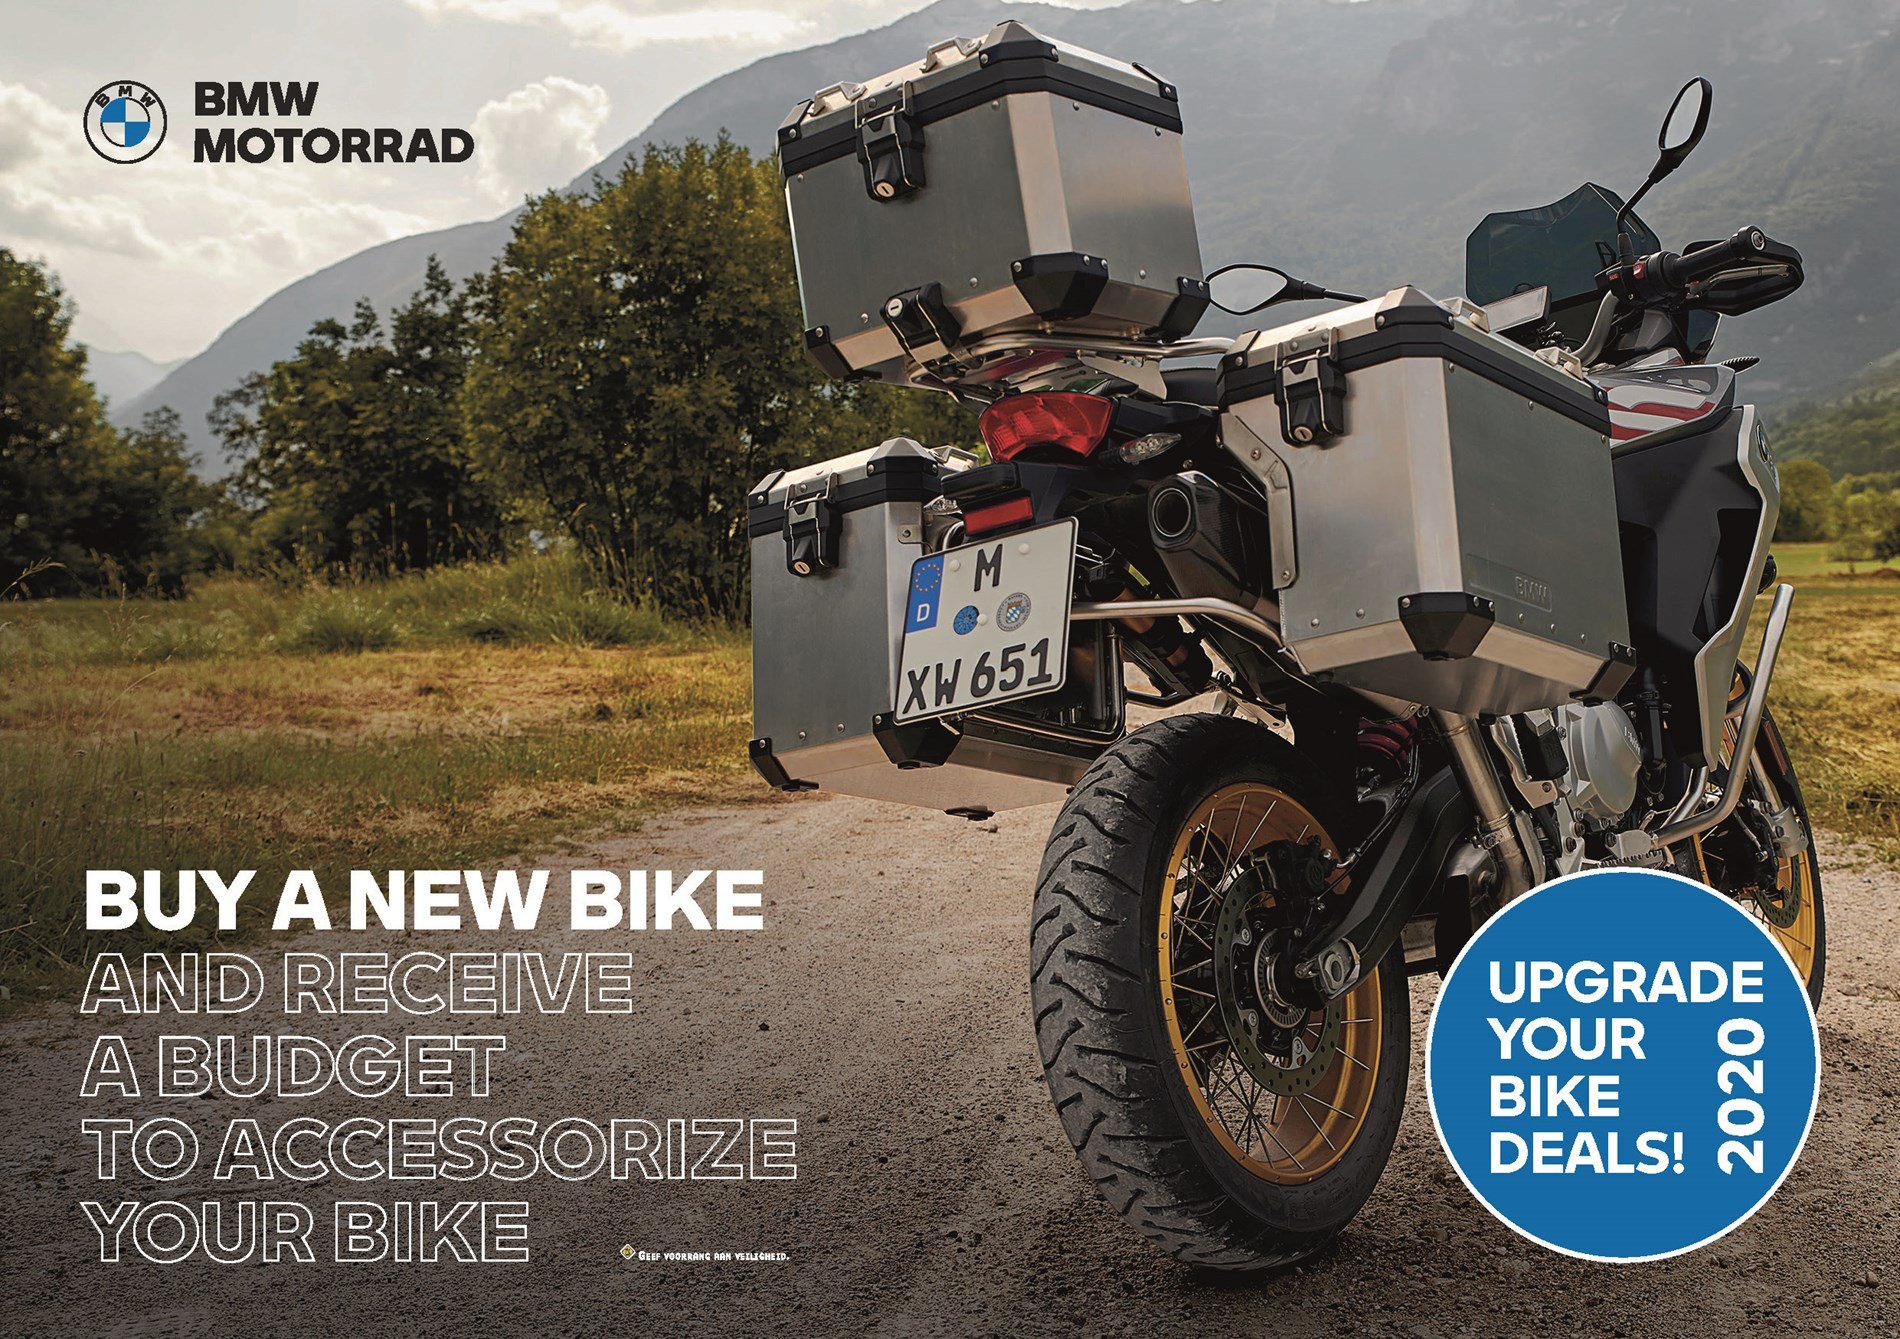 BMW MOTORRAD UPGRADE YOUR BIKE DEALS 2020.